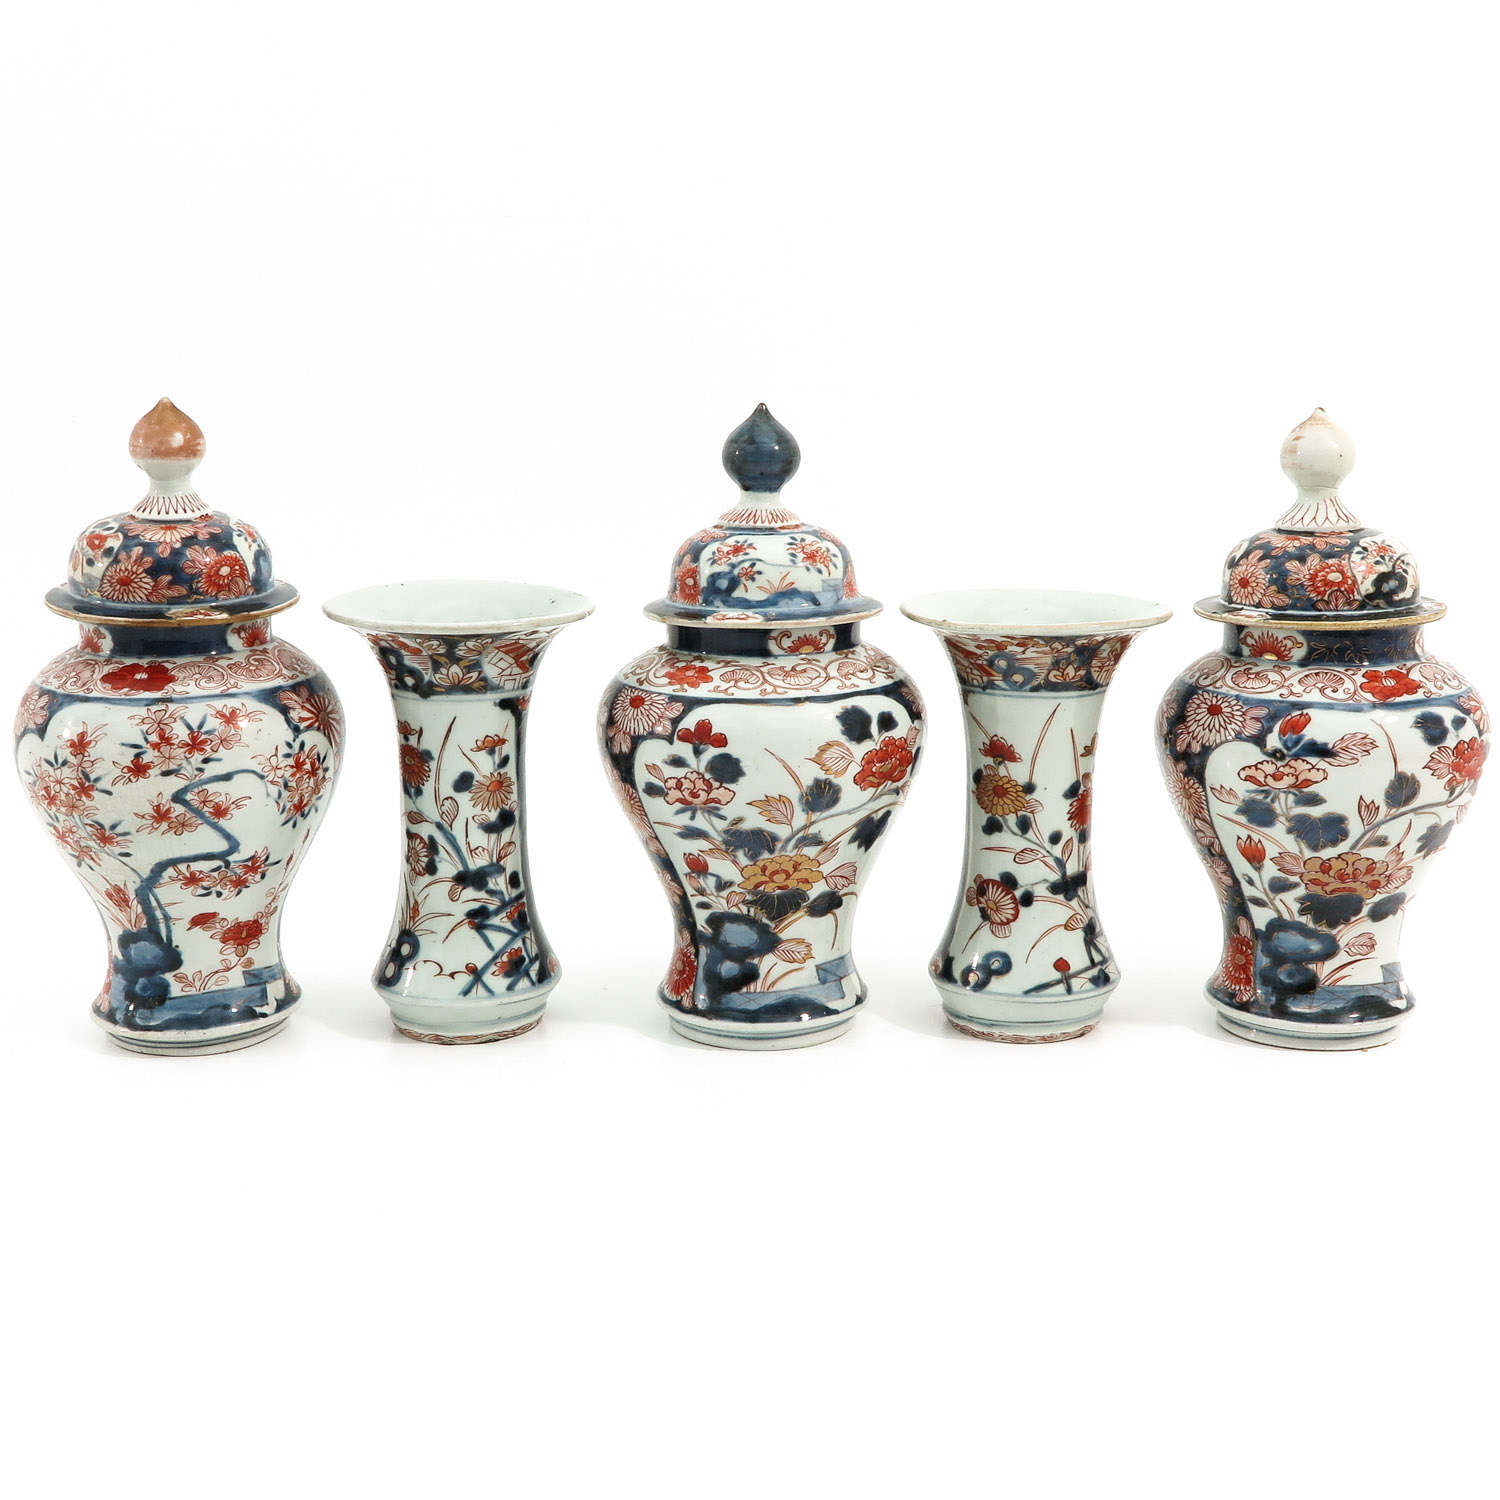 A 5 Piece Imari Garniture Set